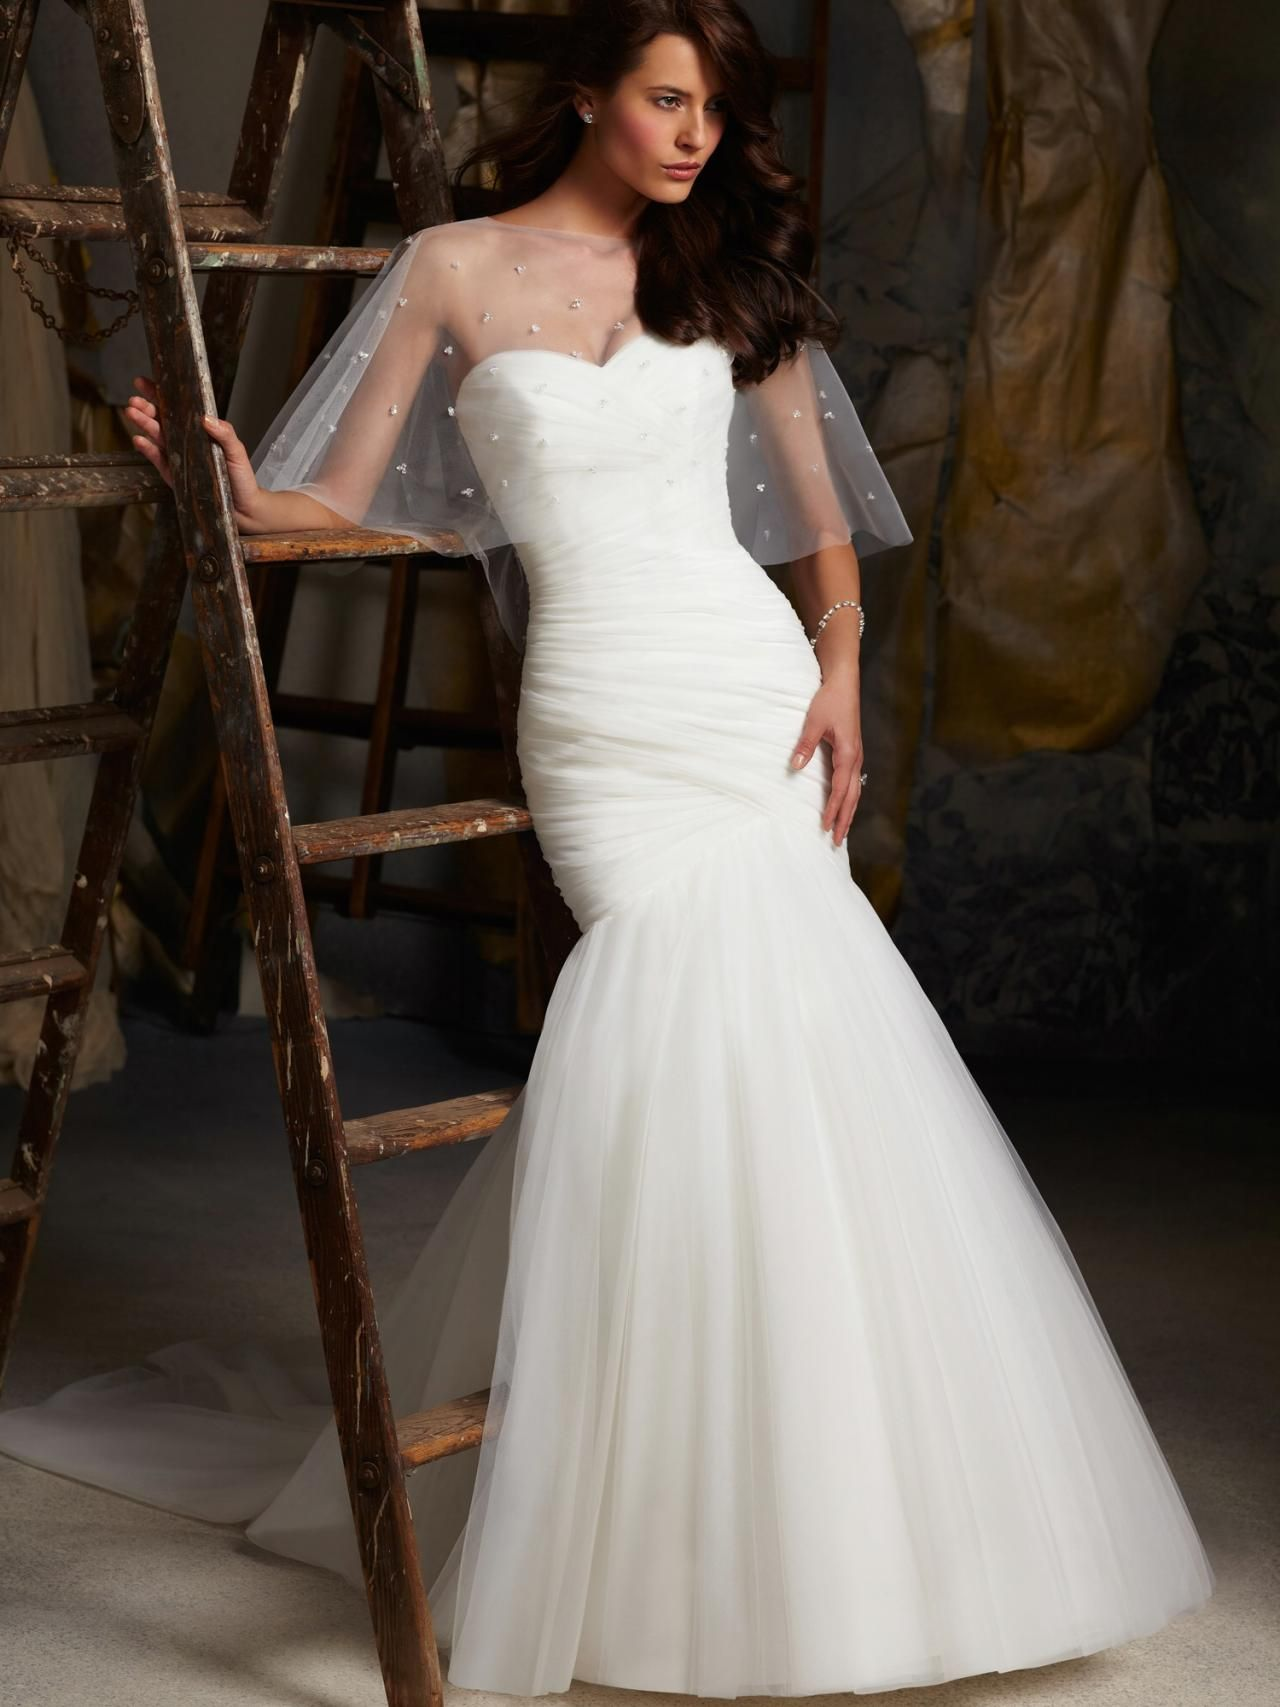 Sweetheart Ruched Mermaid Wedding Dress Bridal Gown Formal Occasion On Luulla